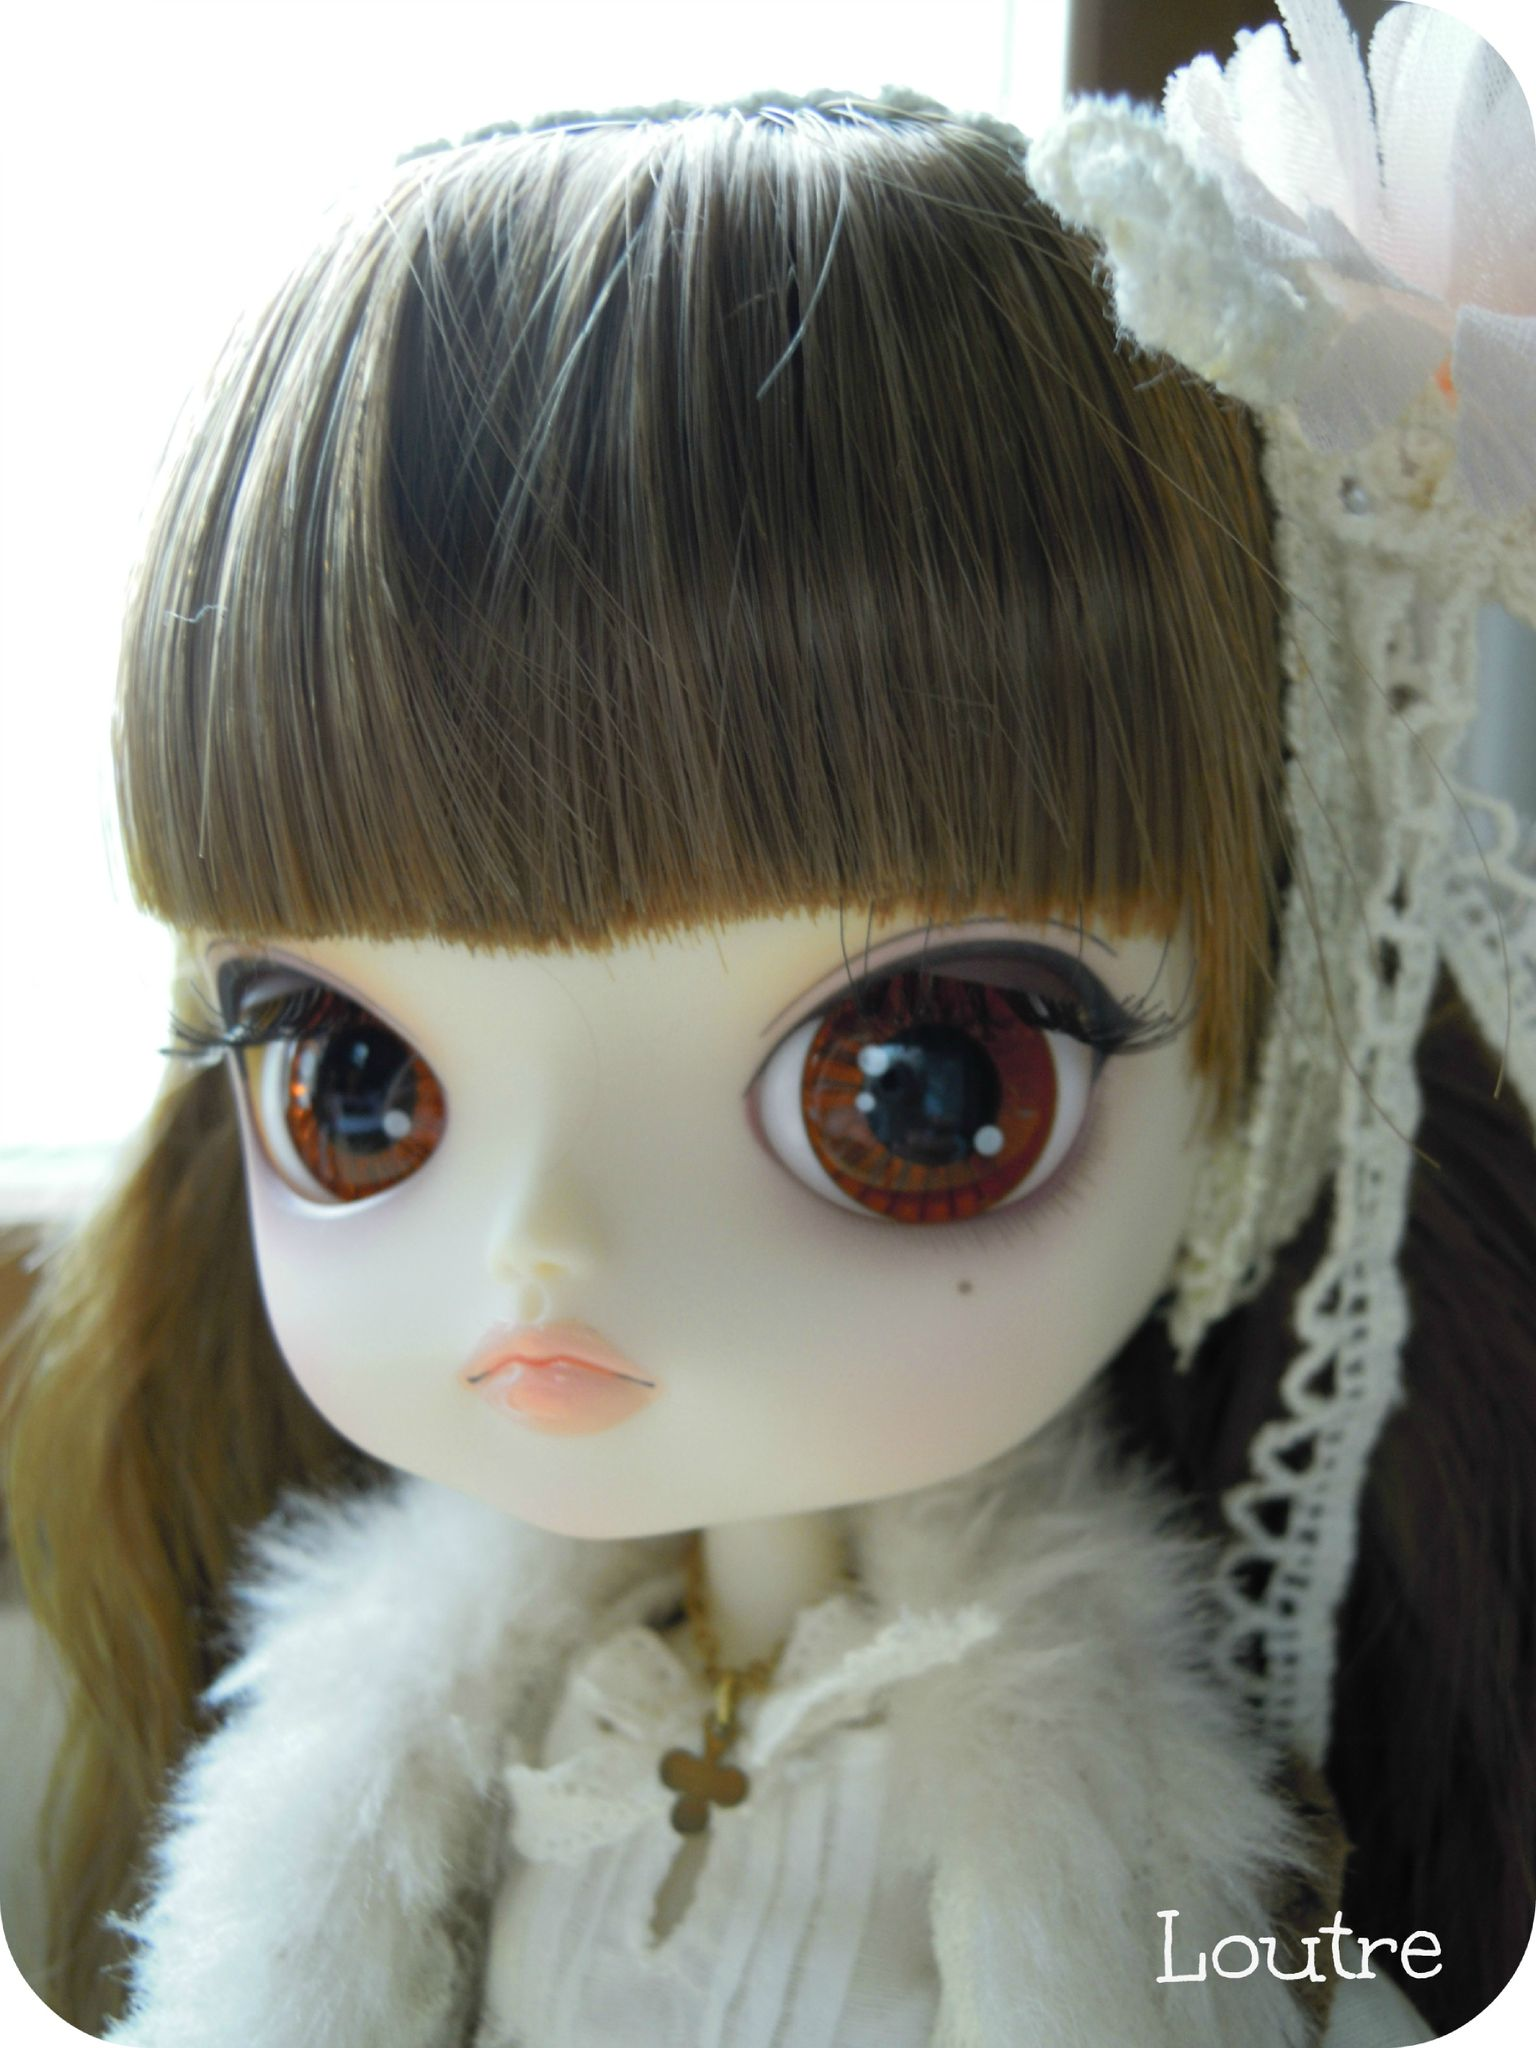 Mink - Dal Chibi Risa Sweet Girl version